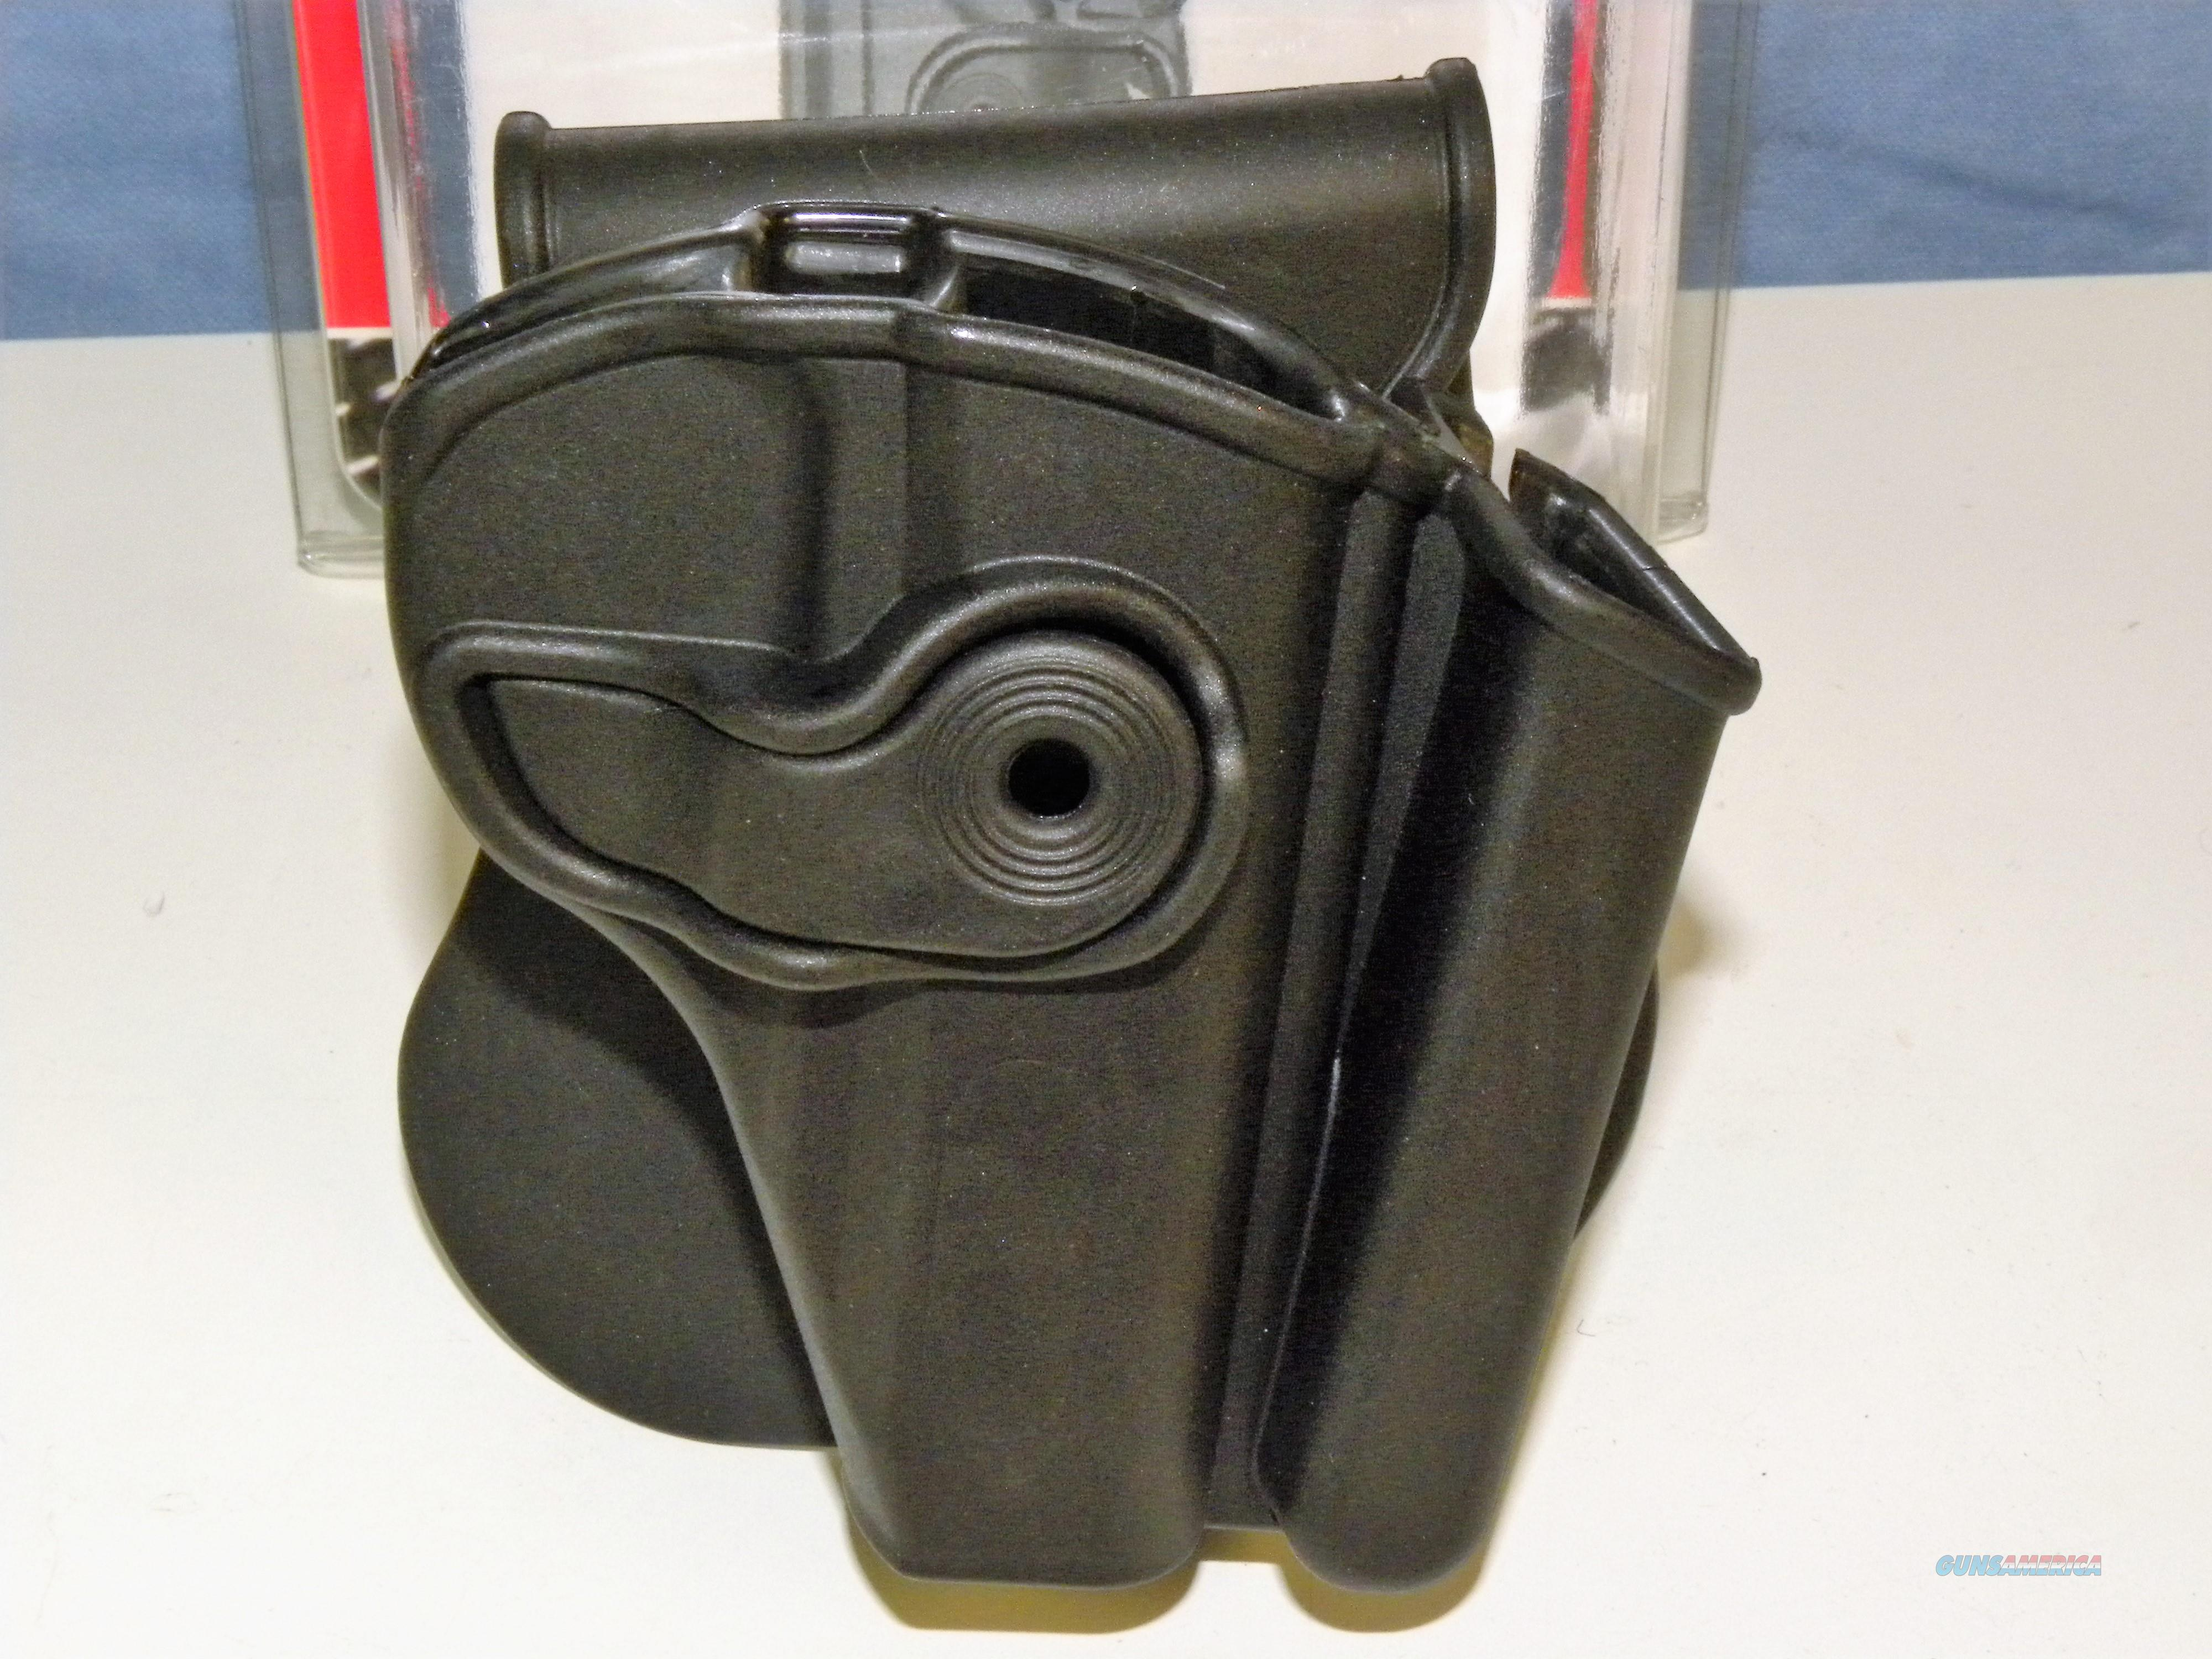 iTAC Kel-Tec .380 Paddle Holster w/ Magazine Pouch  Non-Guns > Holsters and Gunleather > Other